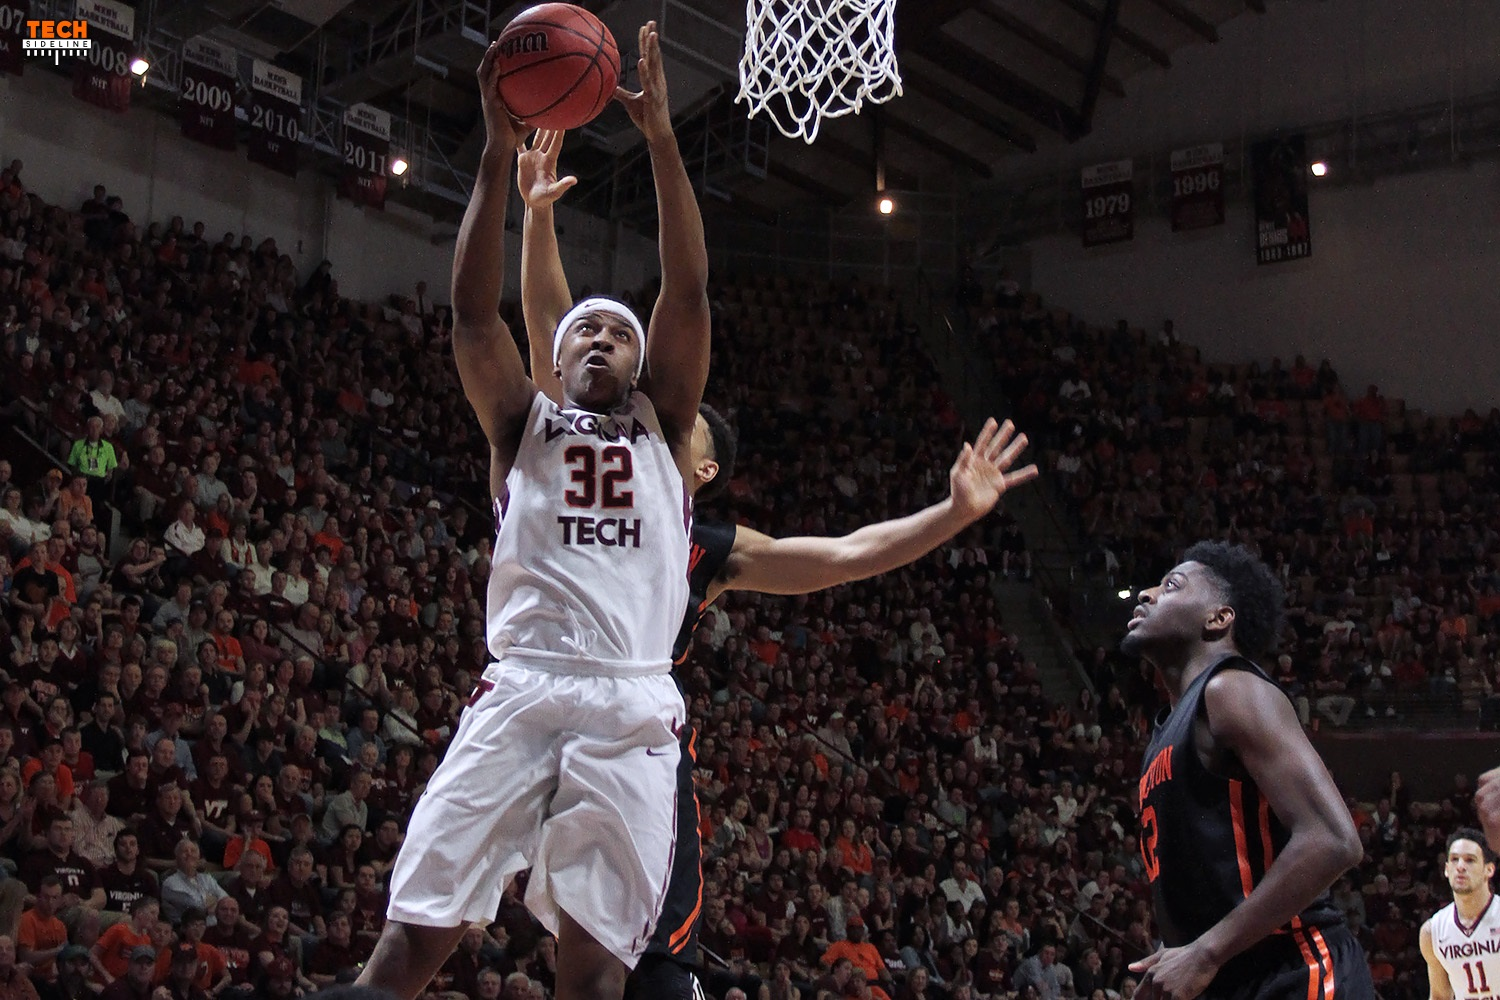 Zach LeDay goes up against Princeton, in front of a huge Cassell Crowd.